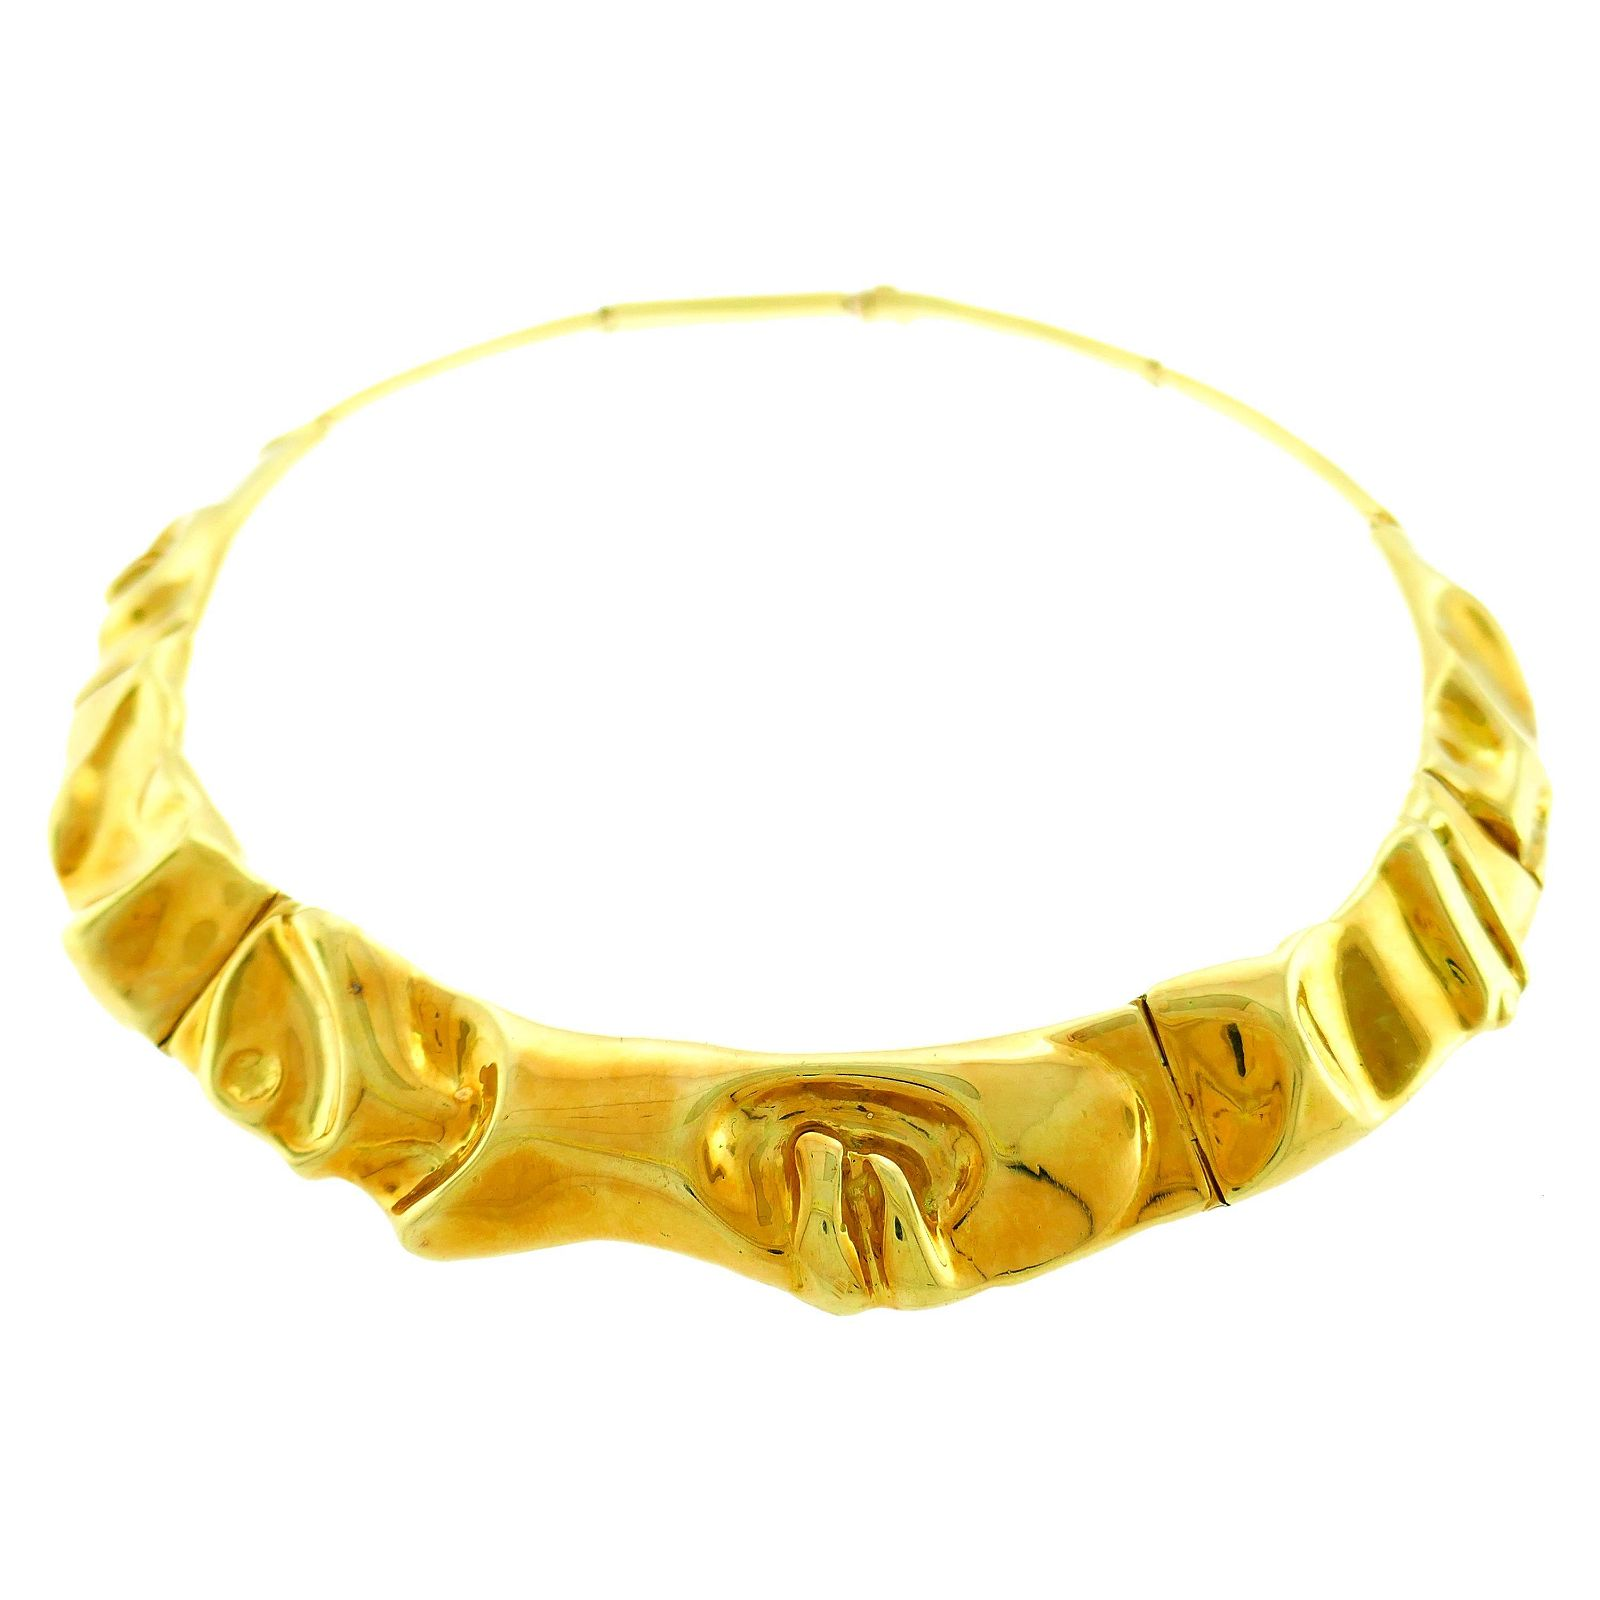 Vintage Yellow Gold Collar Necklace